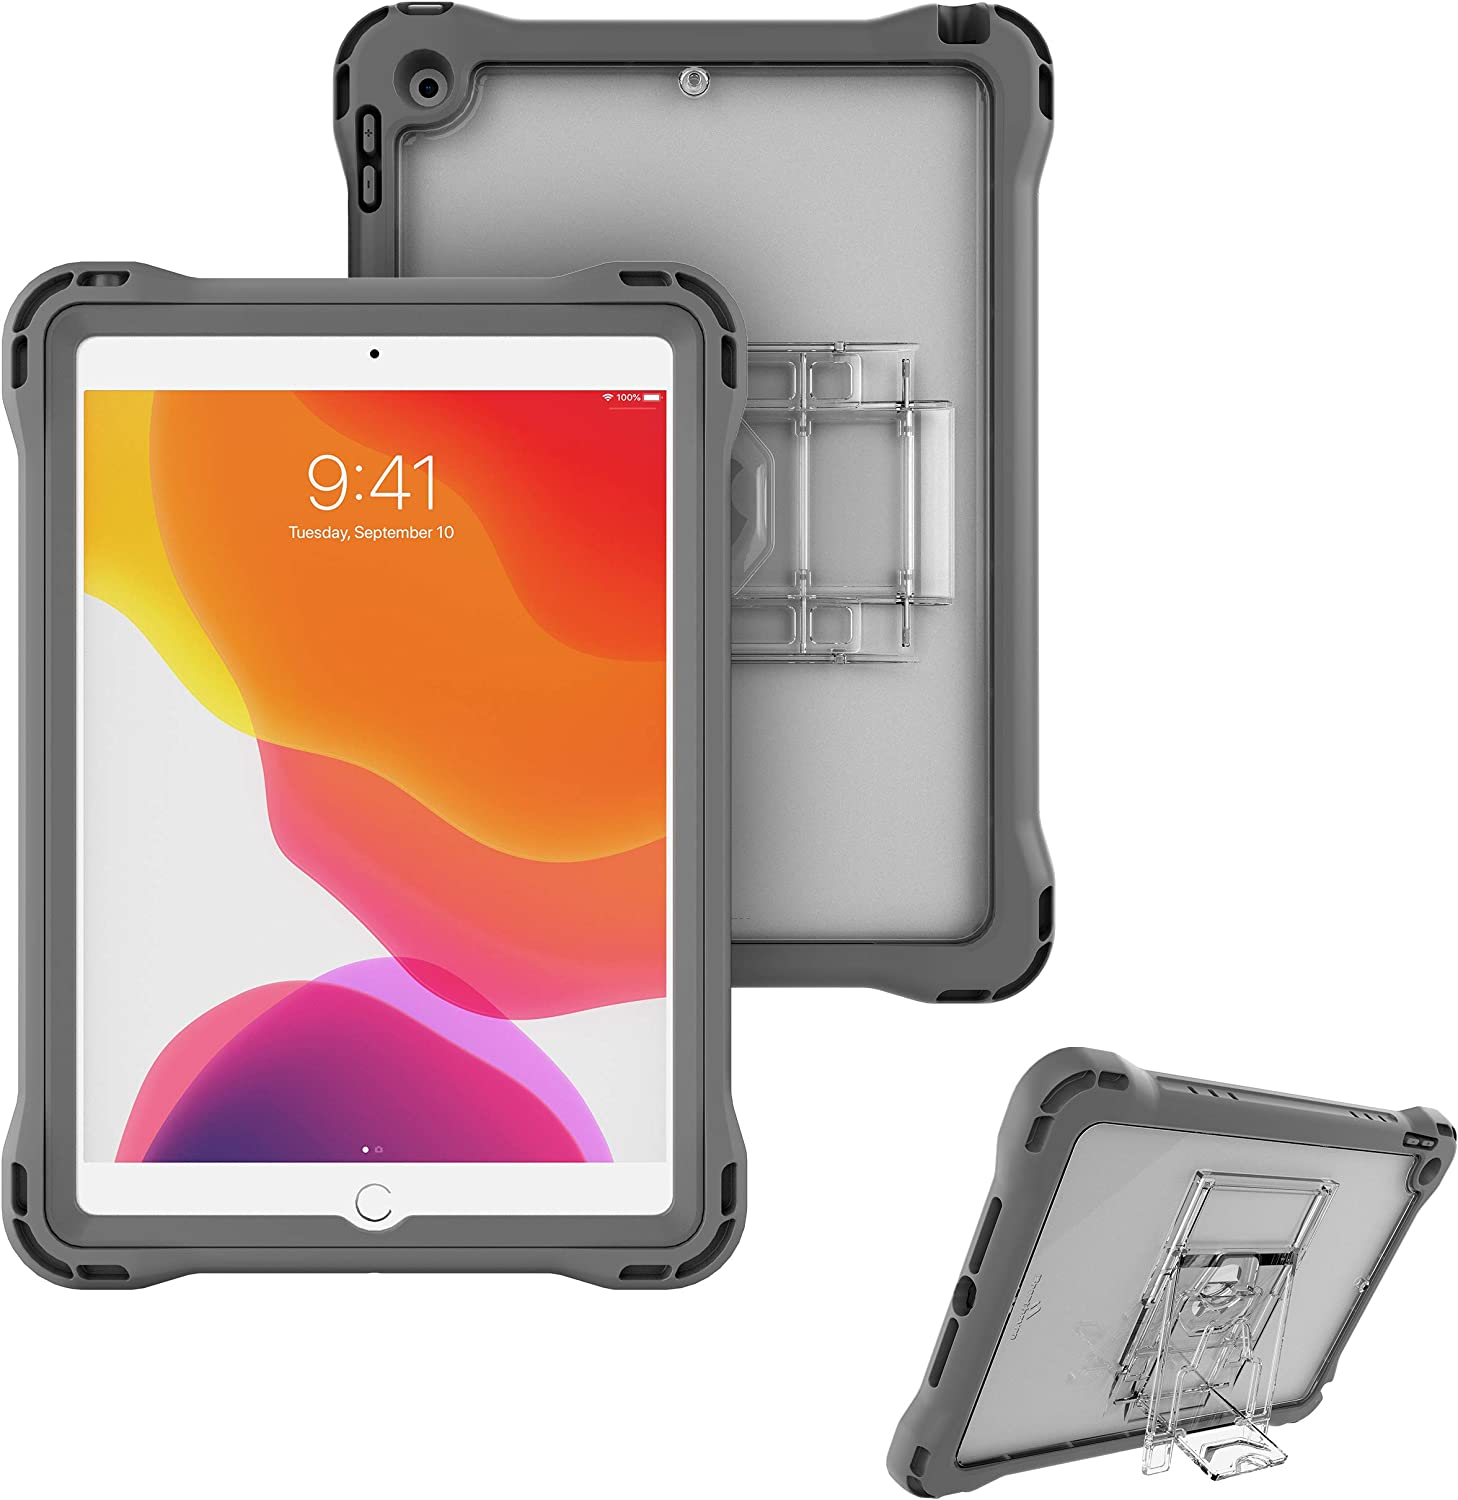 Brenthaven Edge 360 Case Designed for The Apple iPad 10.2 8g and 7g (2021) for School and Office Use - Durable, Rugged Protection with Stand and Screen Shield (Pen Holder Sold Separately)